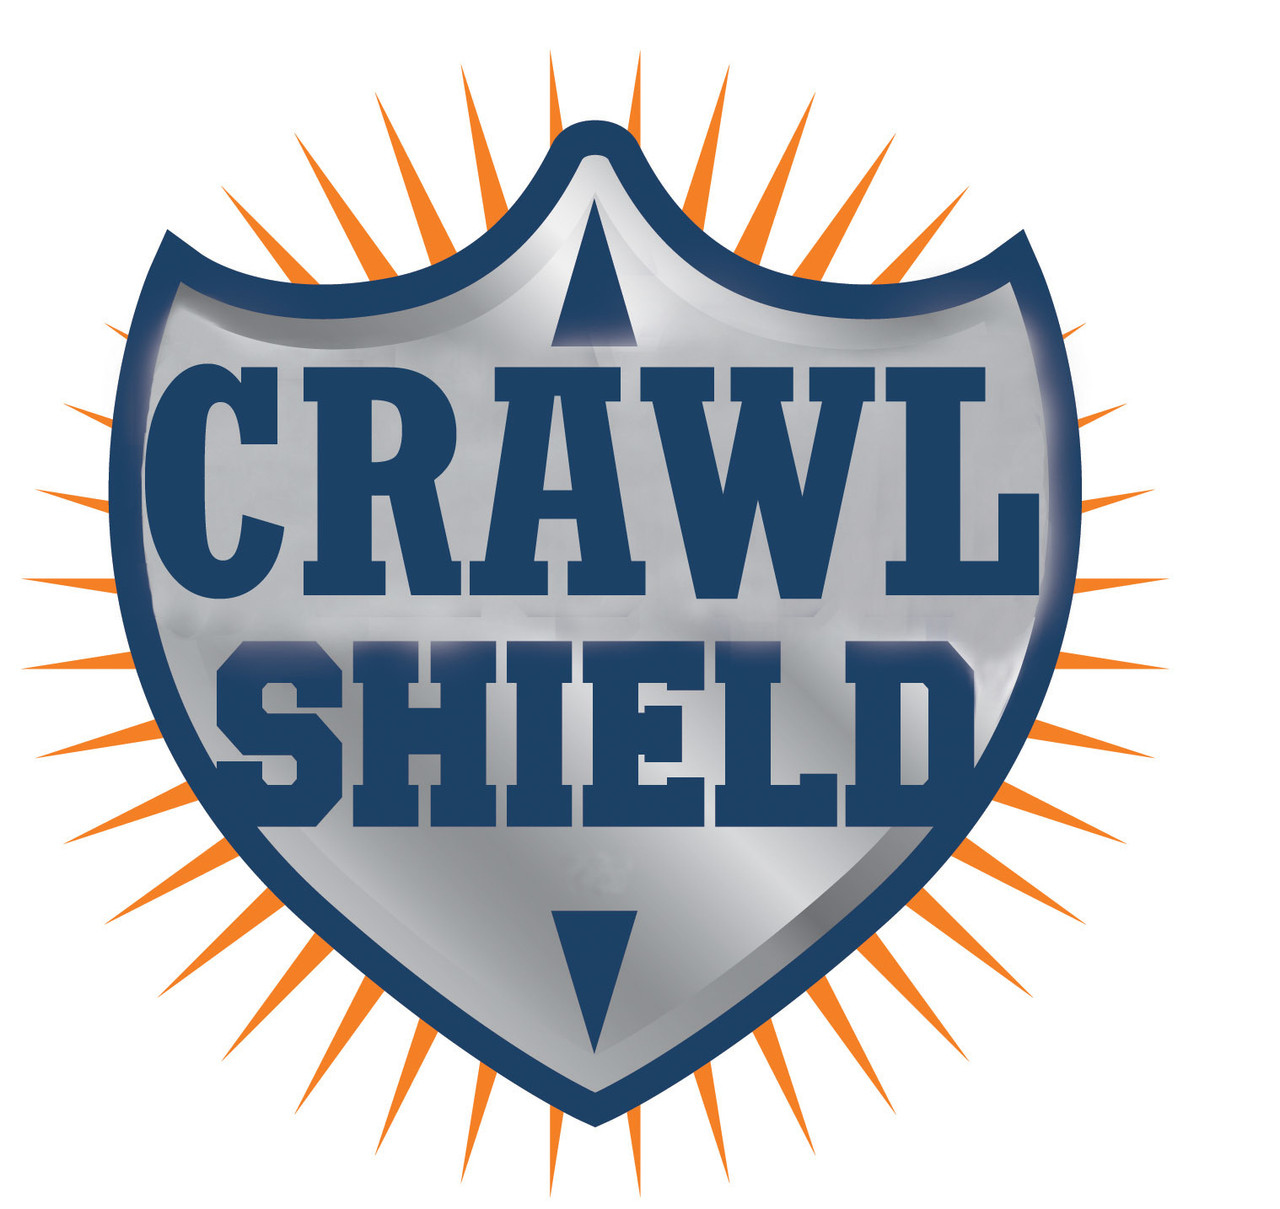 CrawlShield System